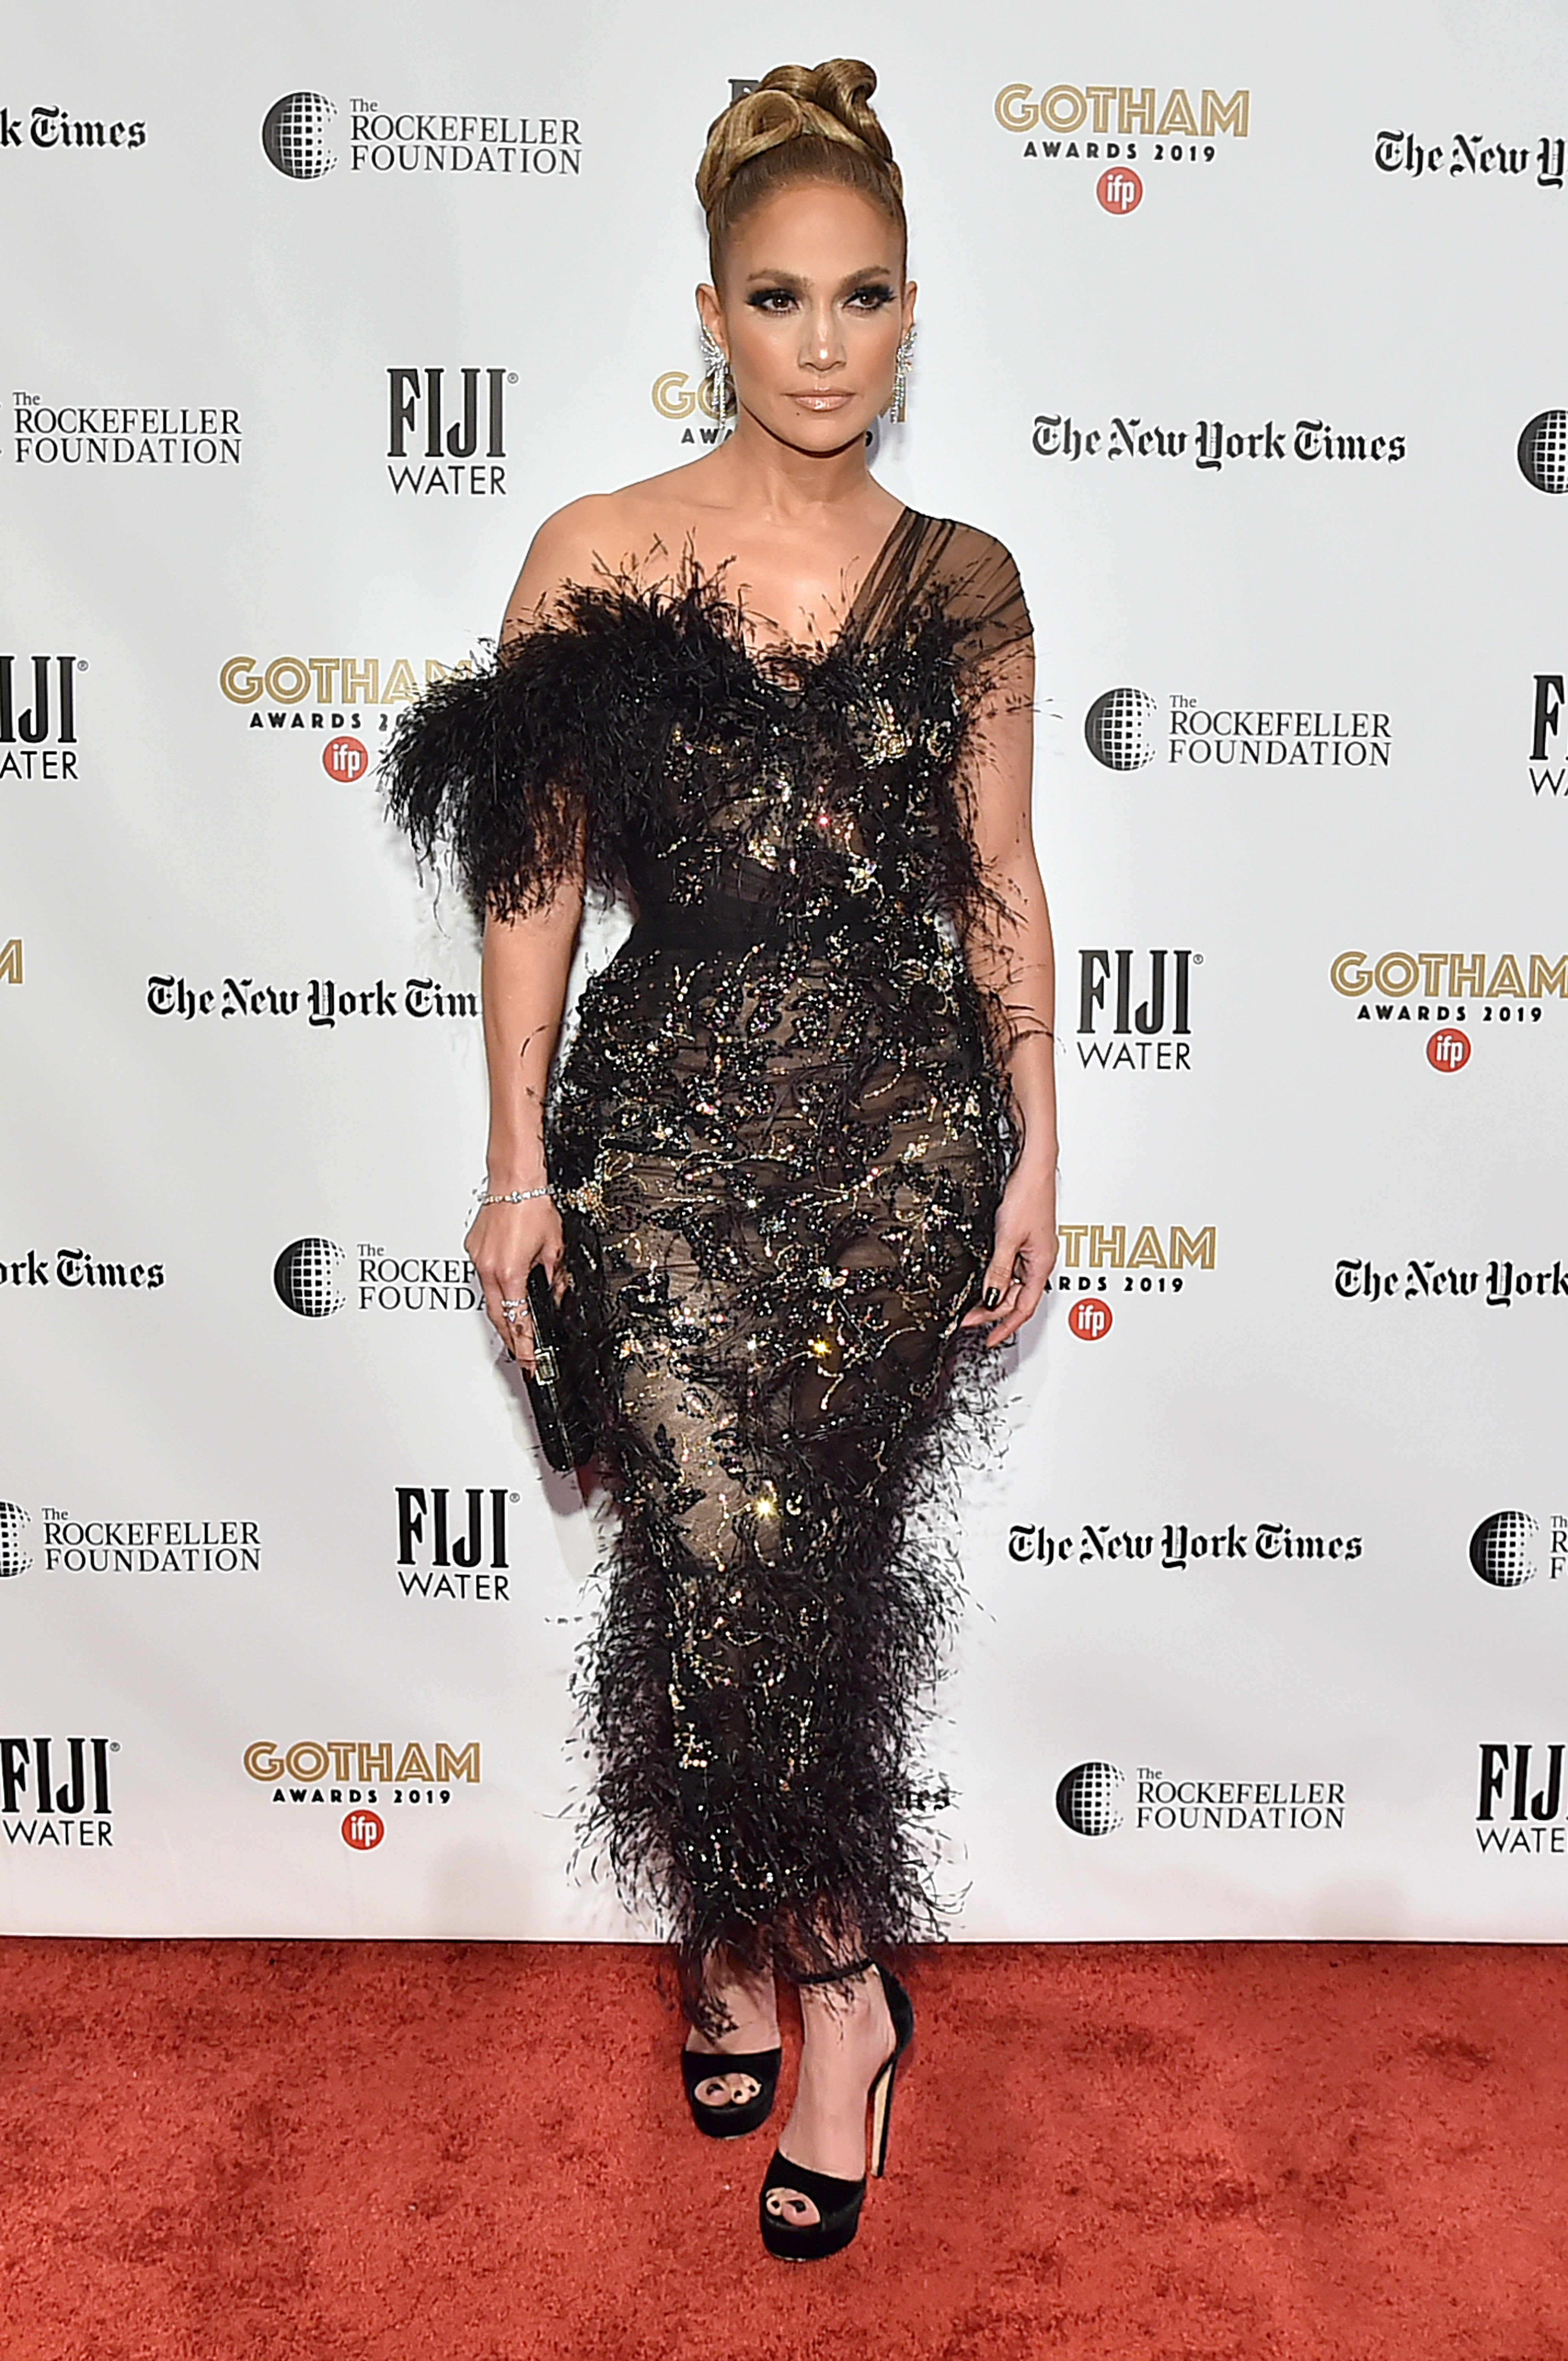 Jennifer Lopez attends the IFP's 29th Annual Gotham Independent Film Awards at Cipriani Wall Street, in New York City on December 02, 2019. | Photo: Getty Images.